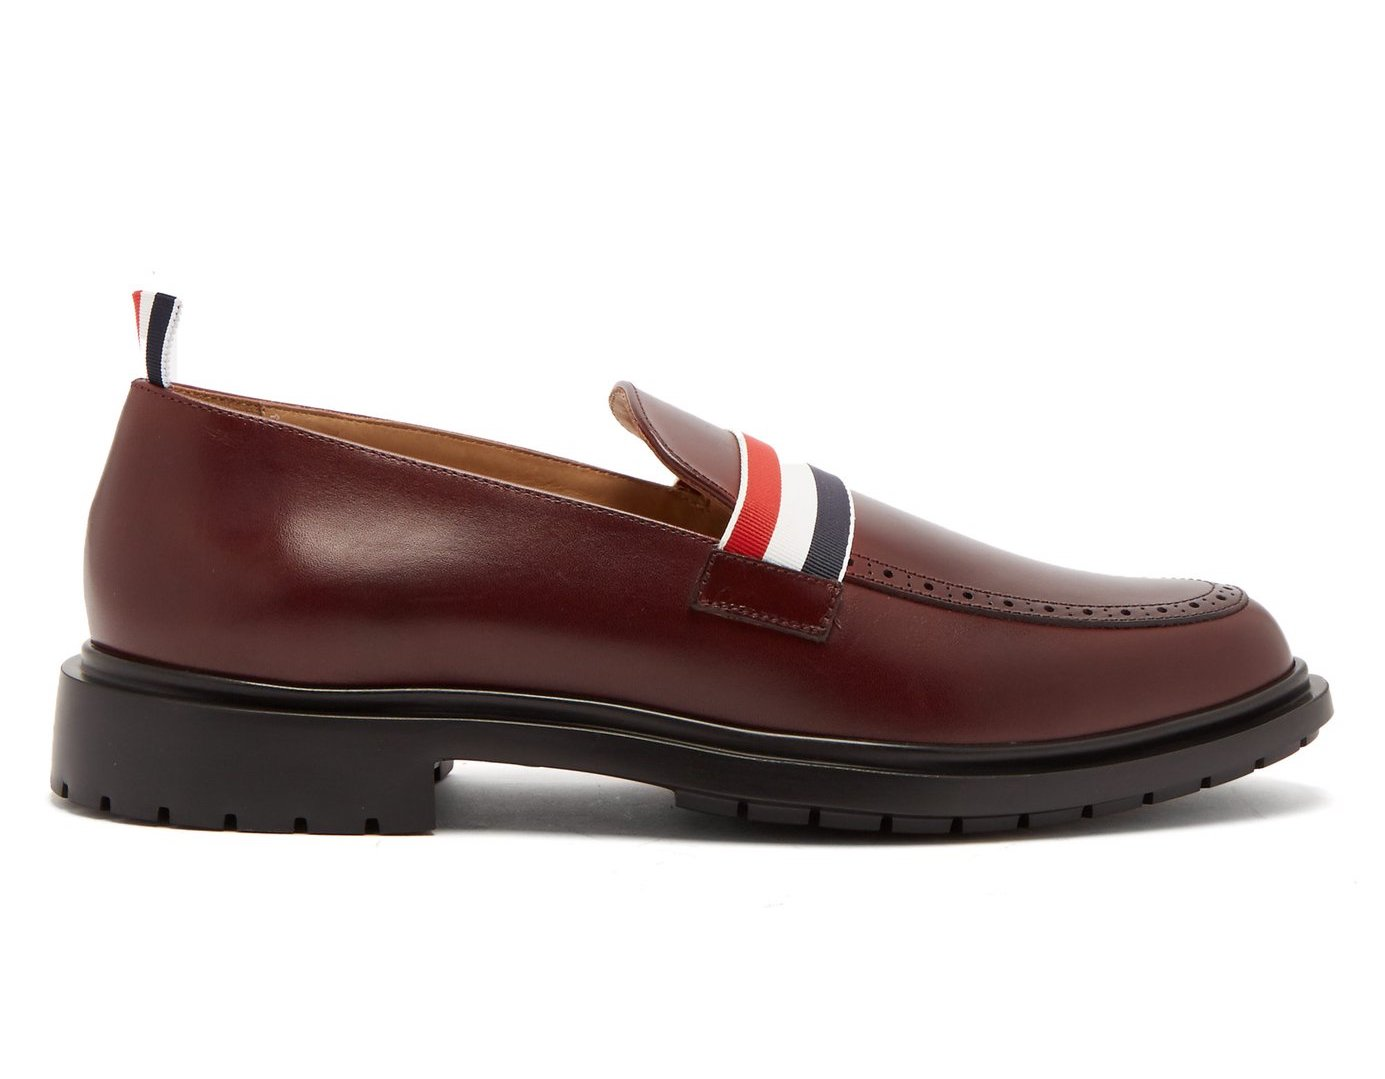 Thom Browne Loafers